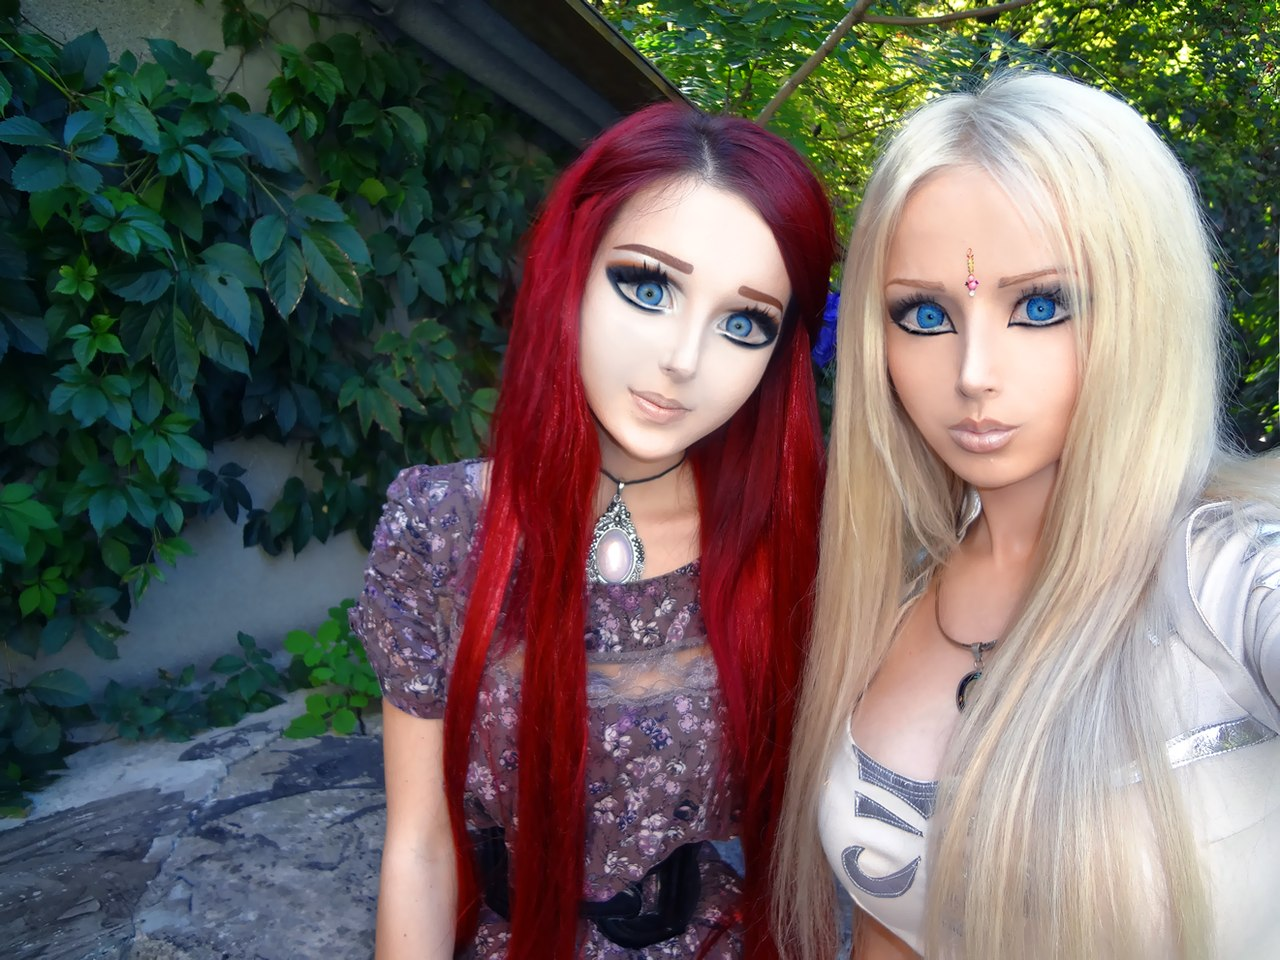 Anime and Barbie, living dolls.